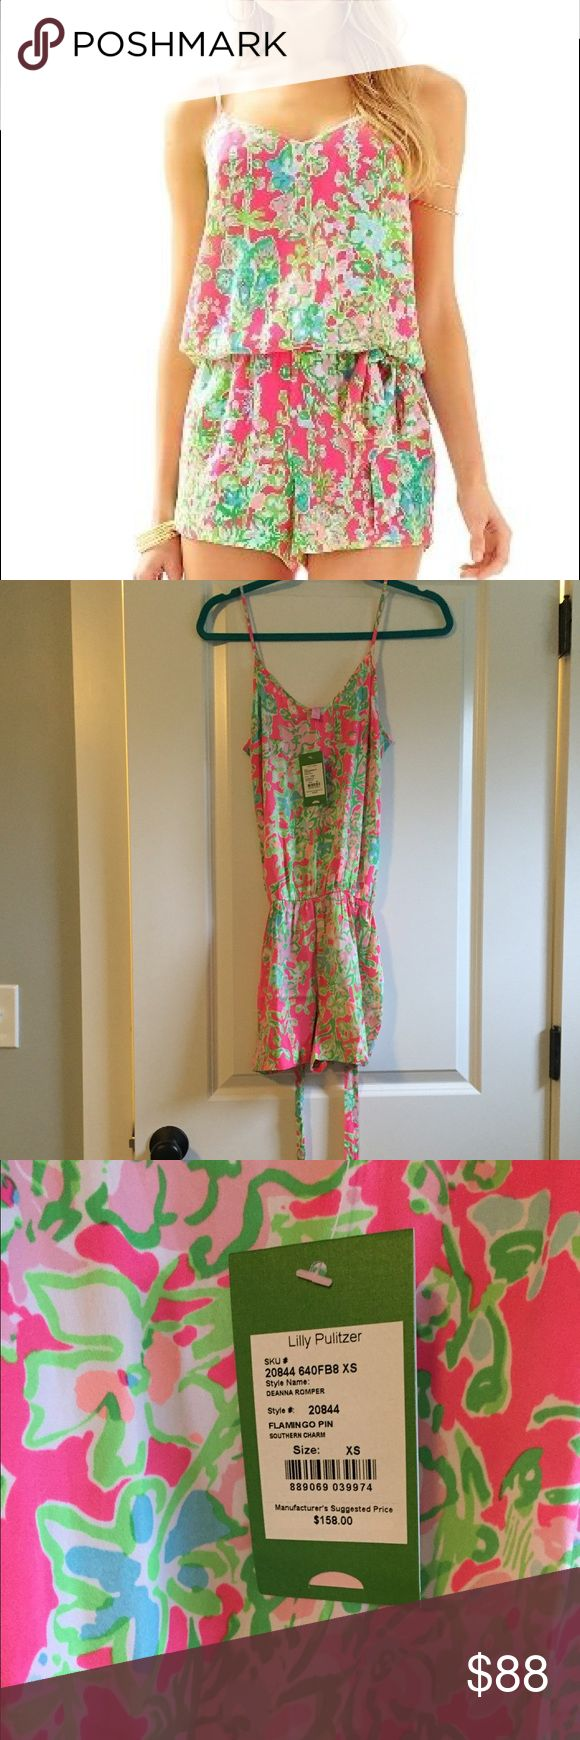 Lily Pulitzer flamingo pin romper Brand new adorable romper. The Deanna romper in souther charm print. Lilly Pulitzer Dresses